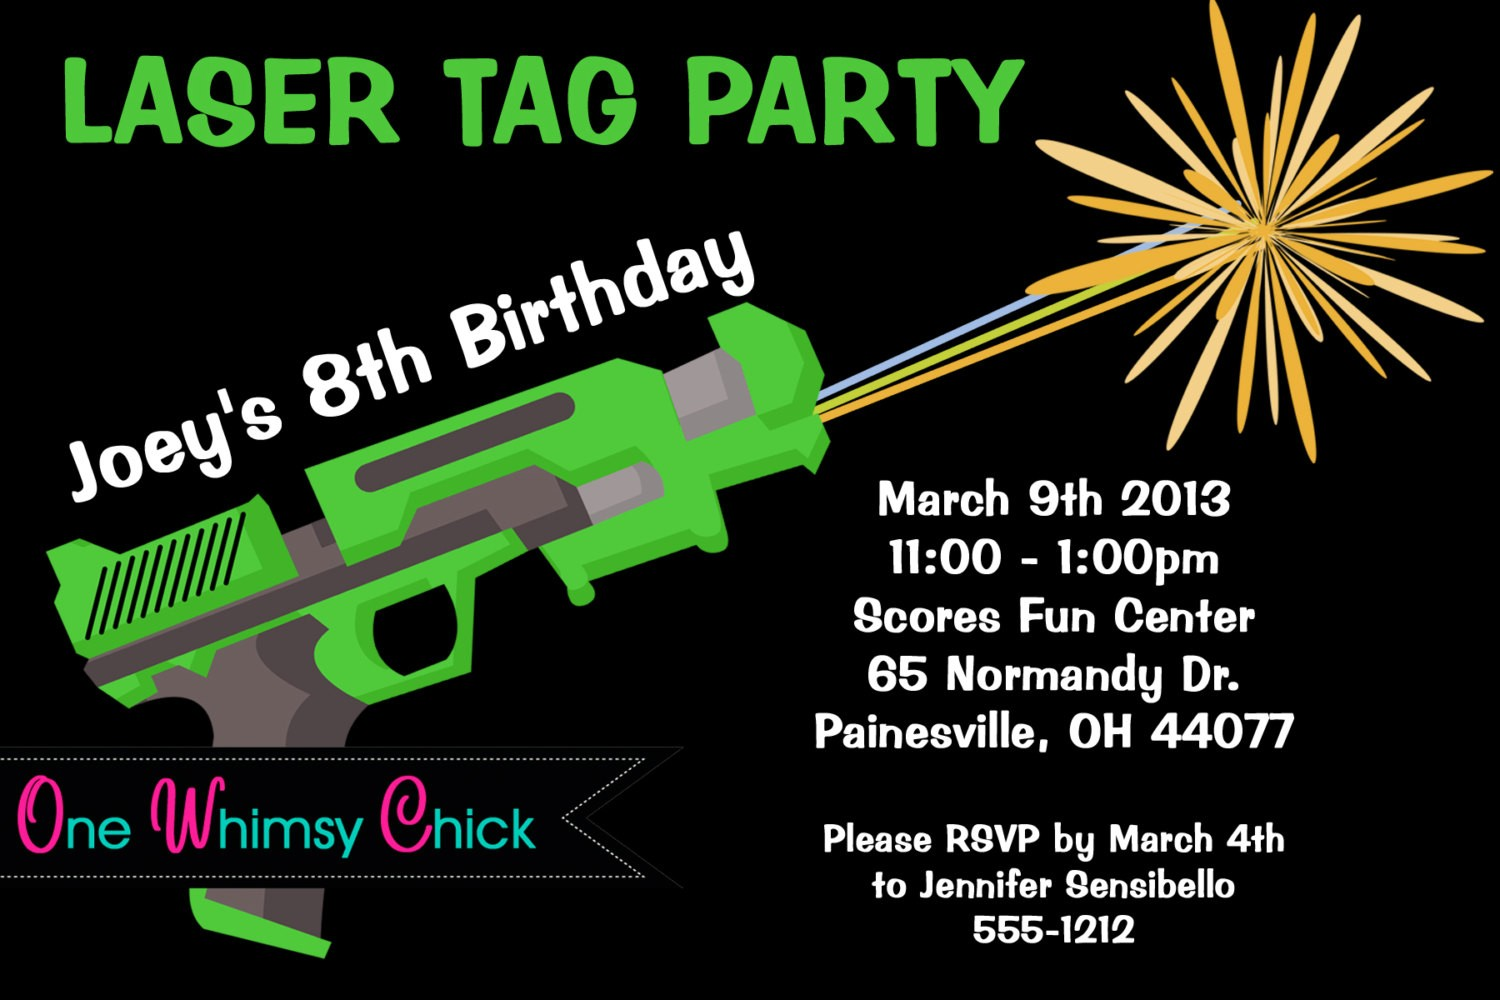 laser tag birthday invitation ideas ; birthday-party-invitation-laser-tag-fresh-glamorous-laser-tag-birthday-invitations-as-prepossessing-ideas